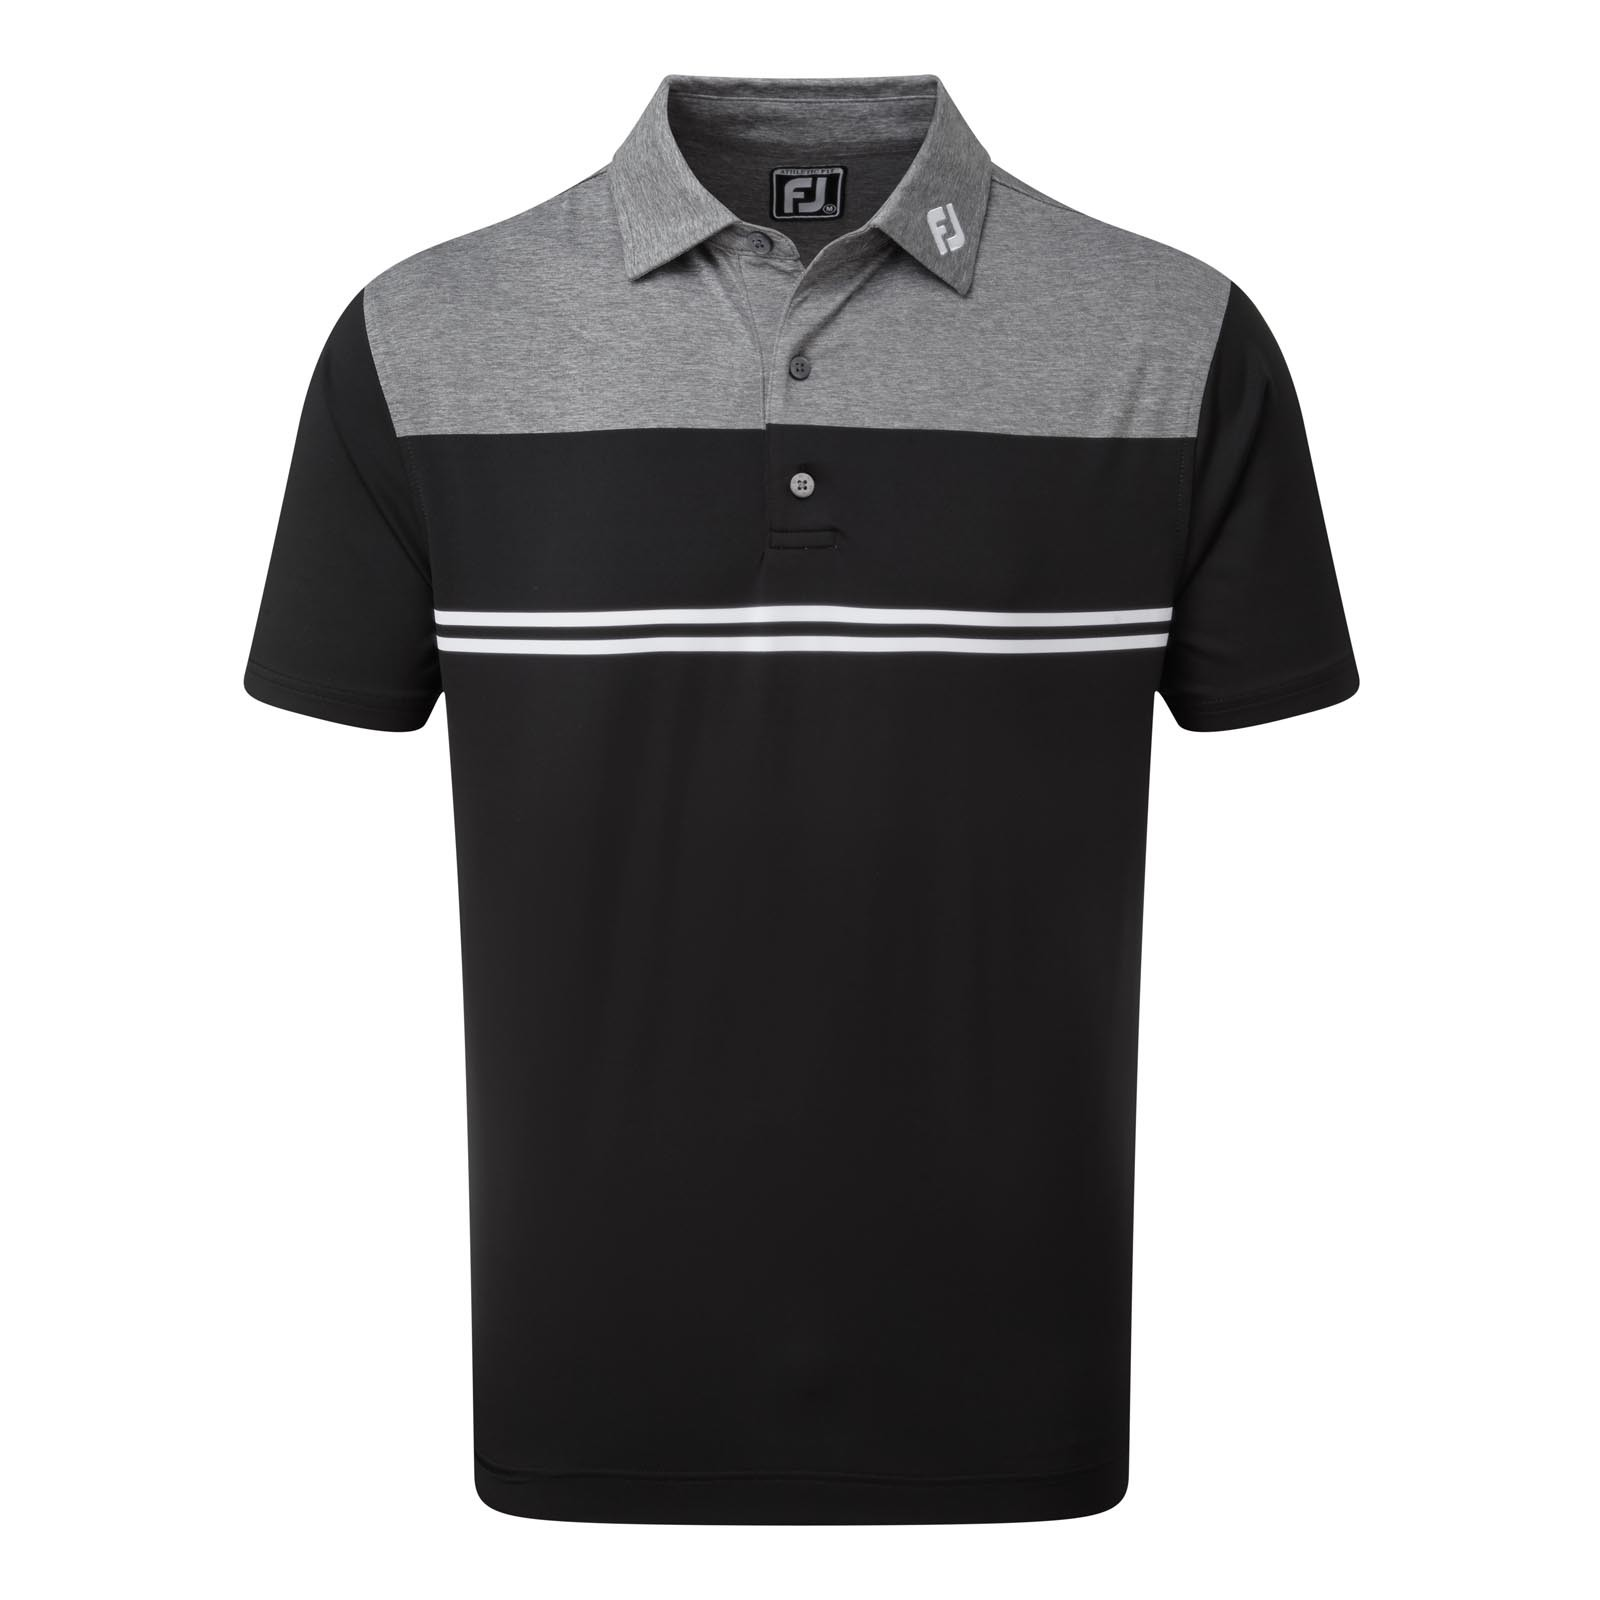 Footjoy Heather Colour Block Lisle Performance Shirts